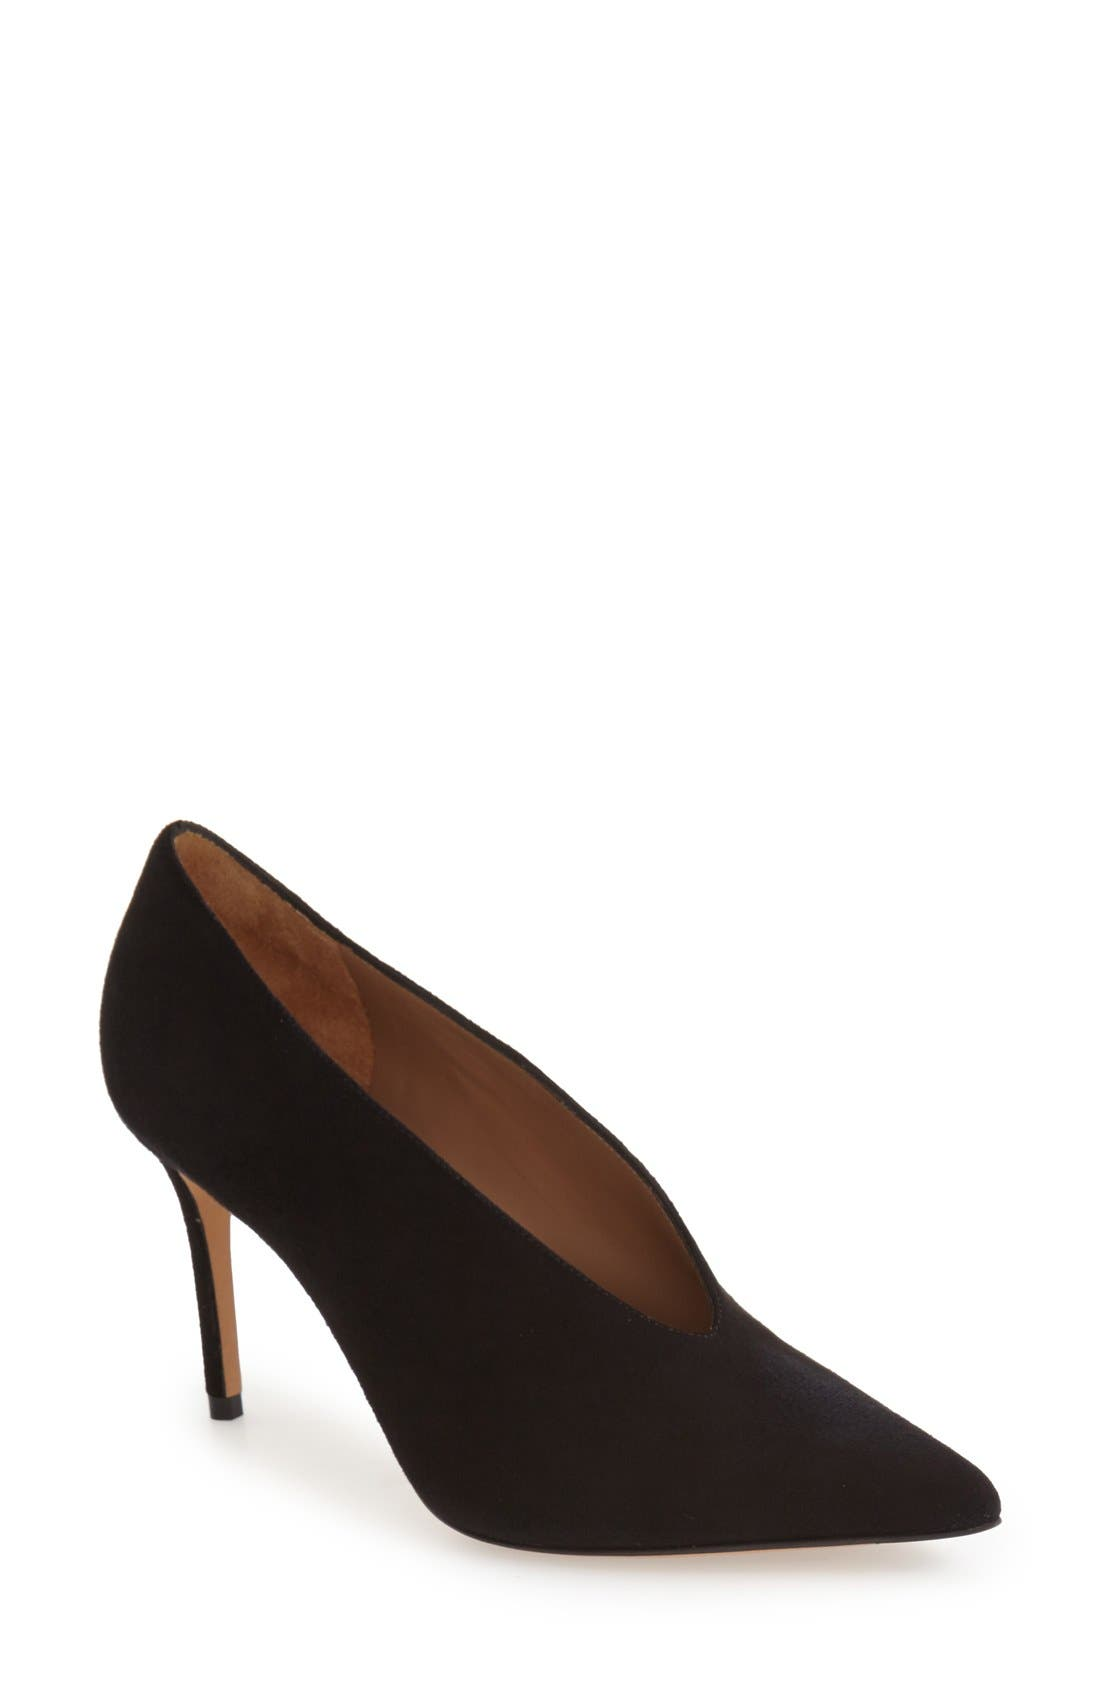 Alternate Image 1 Selected - Vince 'Portia' Pointy Toe Pump (Women)